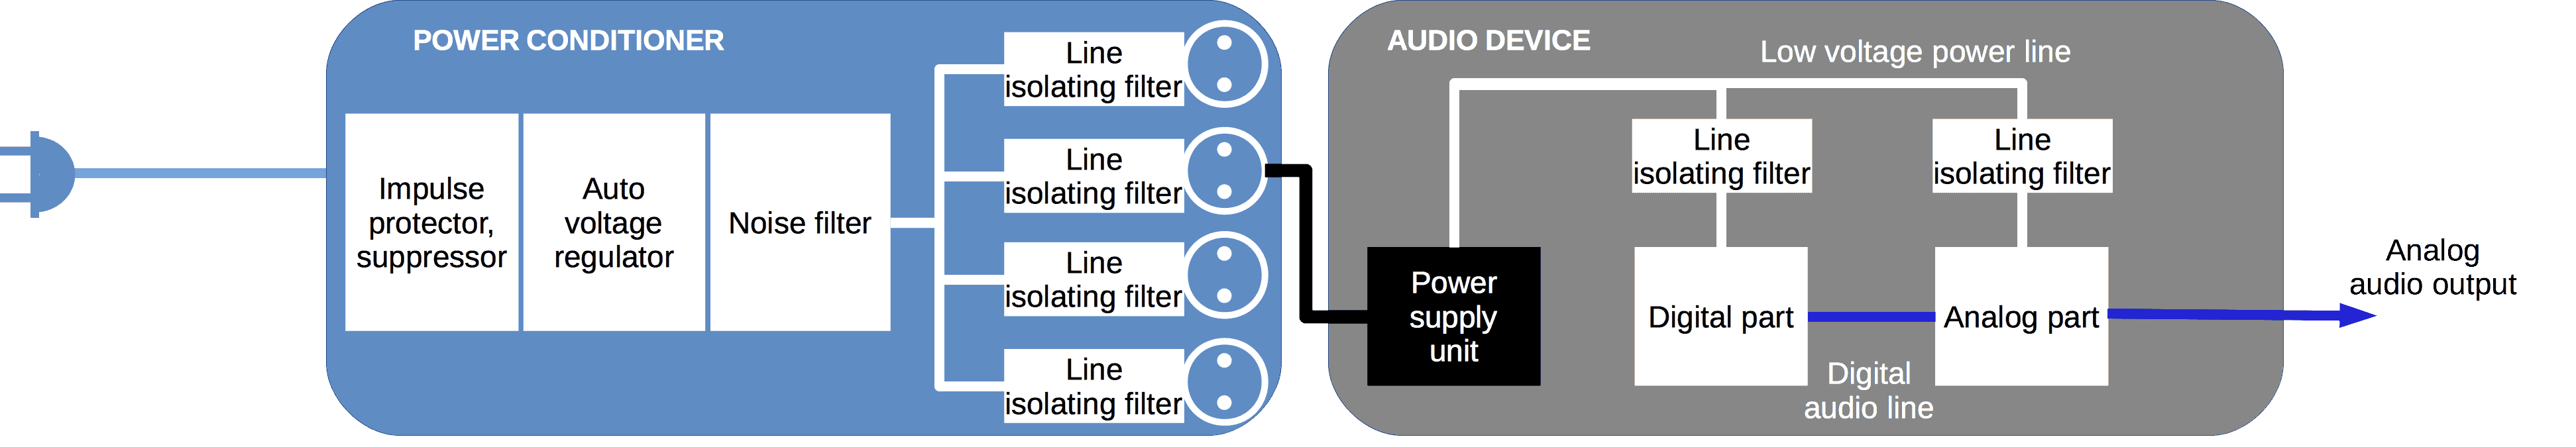 Power system structure with noise isolating filters